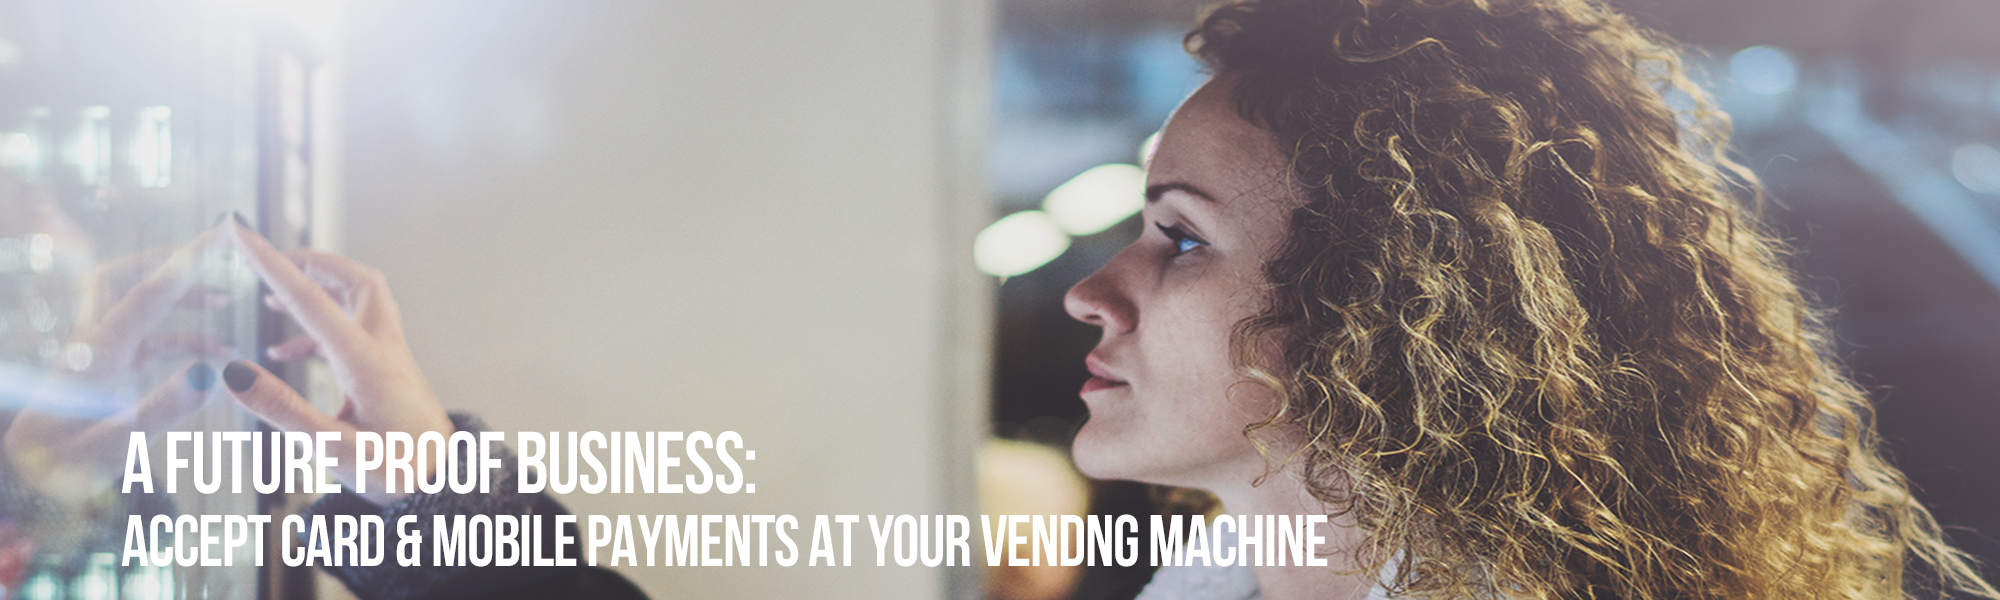 The Benefits of a card reader on your vending machine | CPI